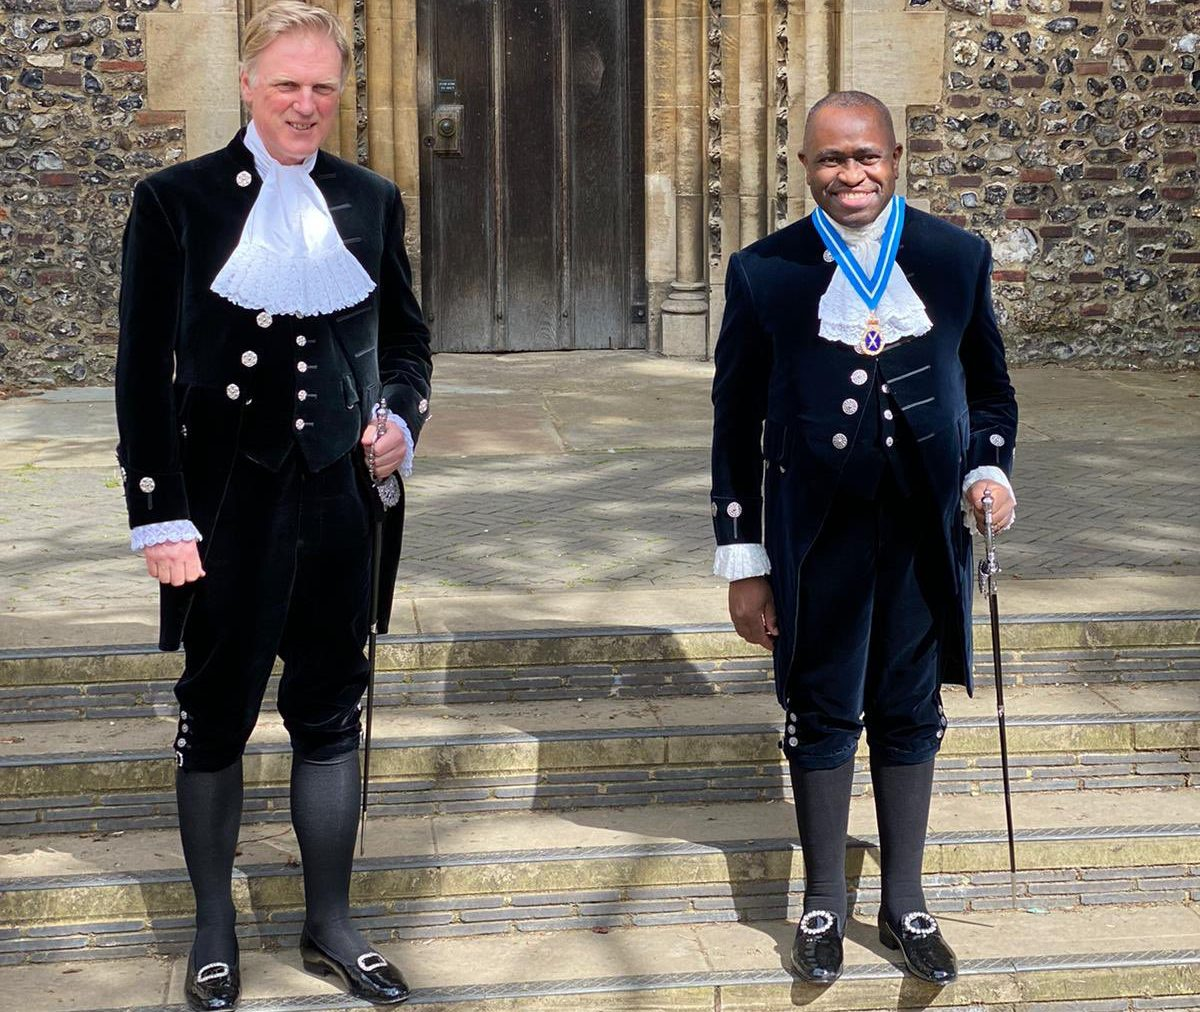 New High Sheriff of Hertfordshire to promote youth empowerment